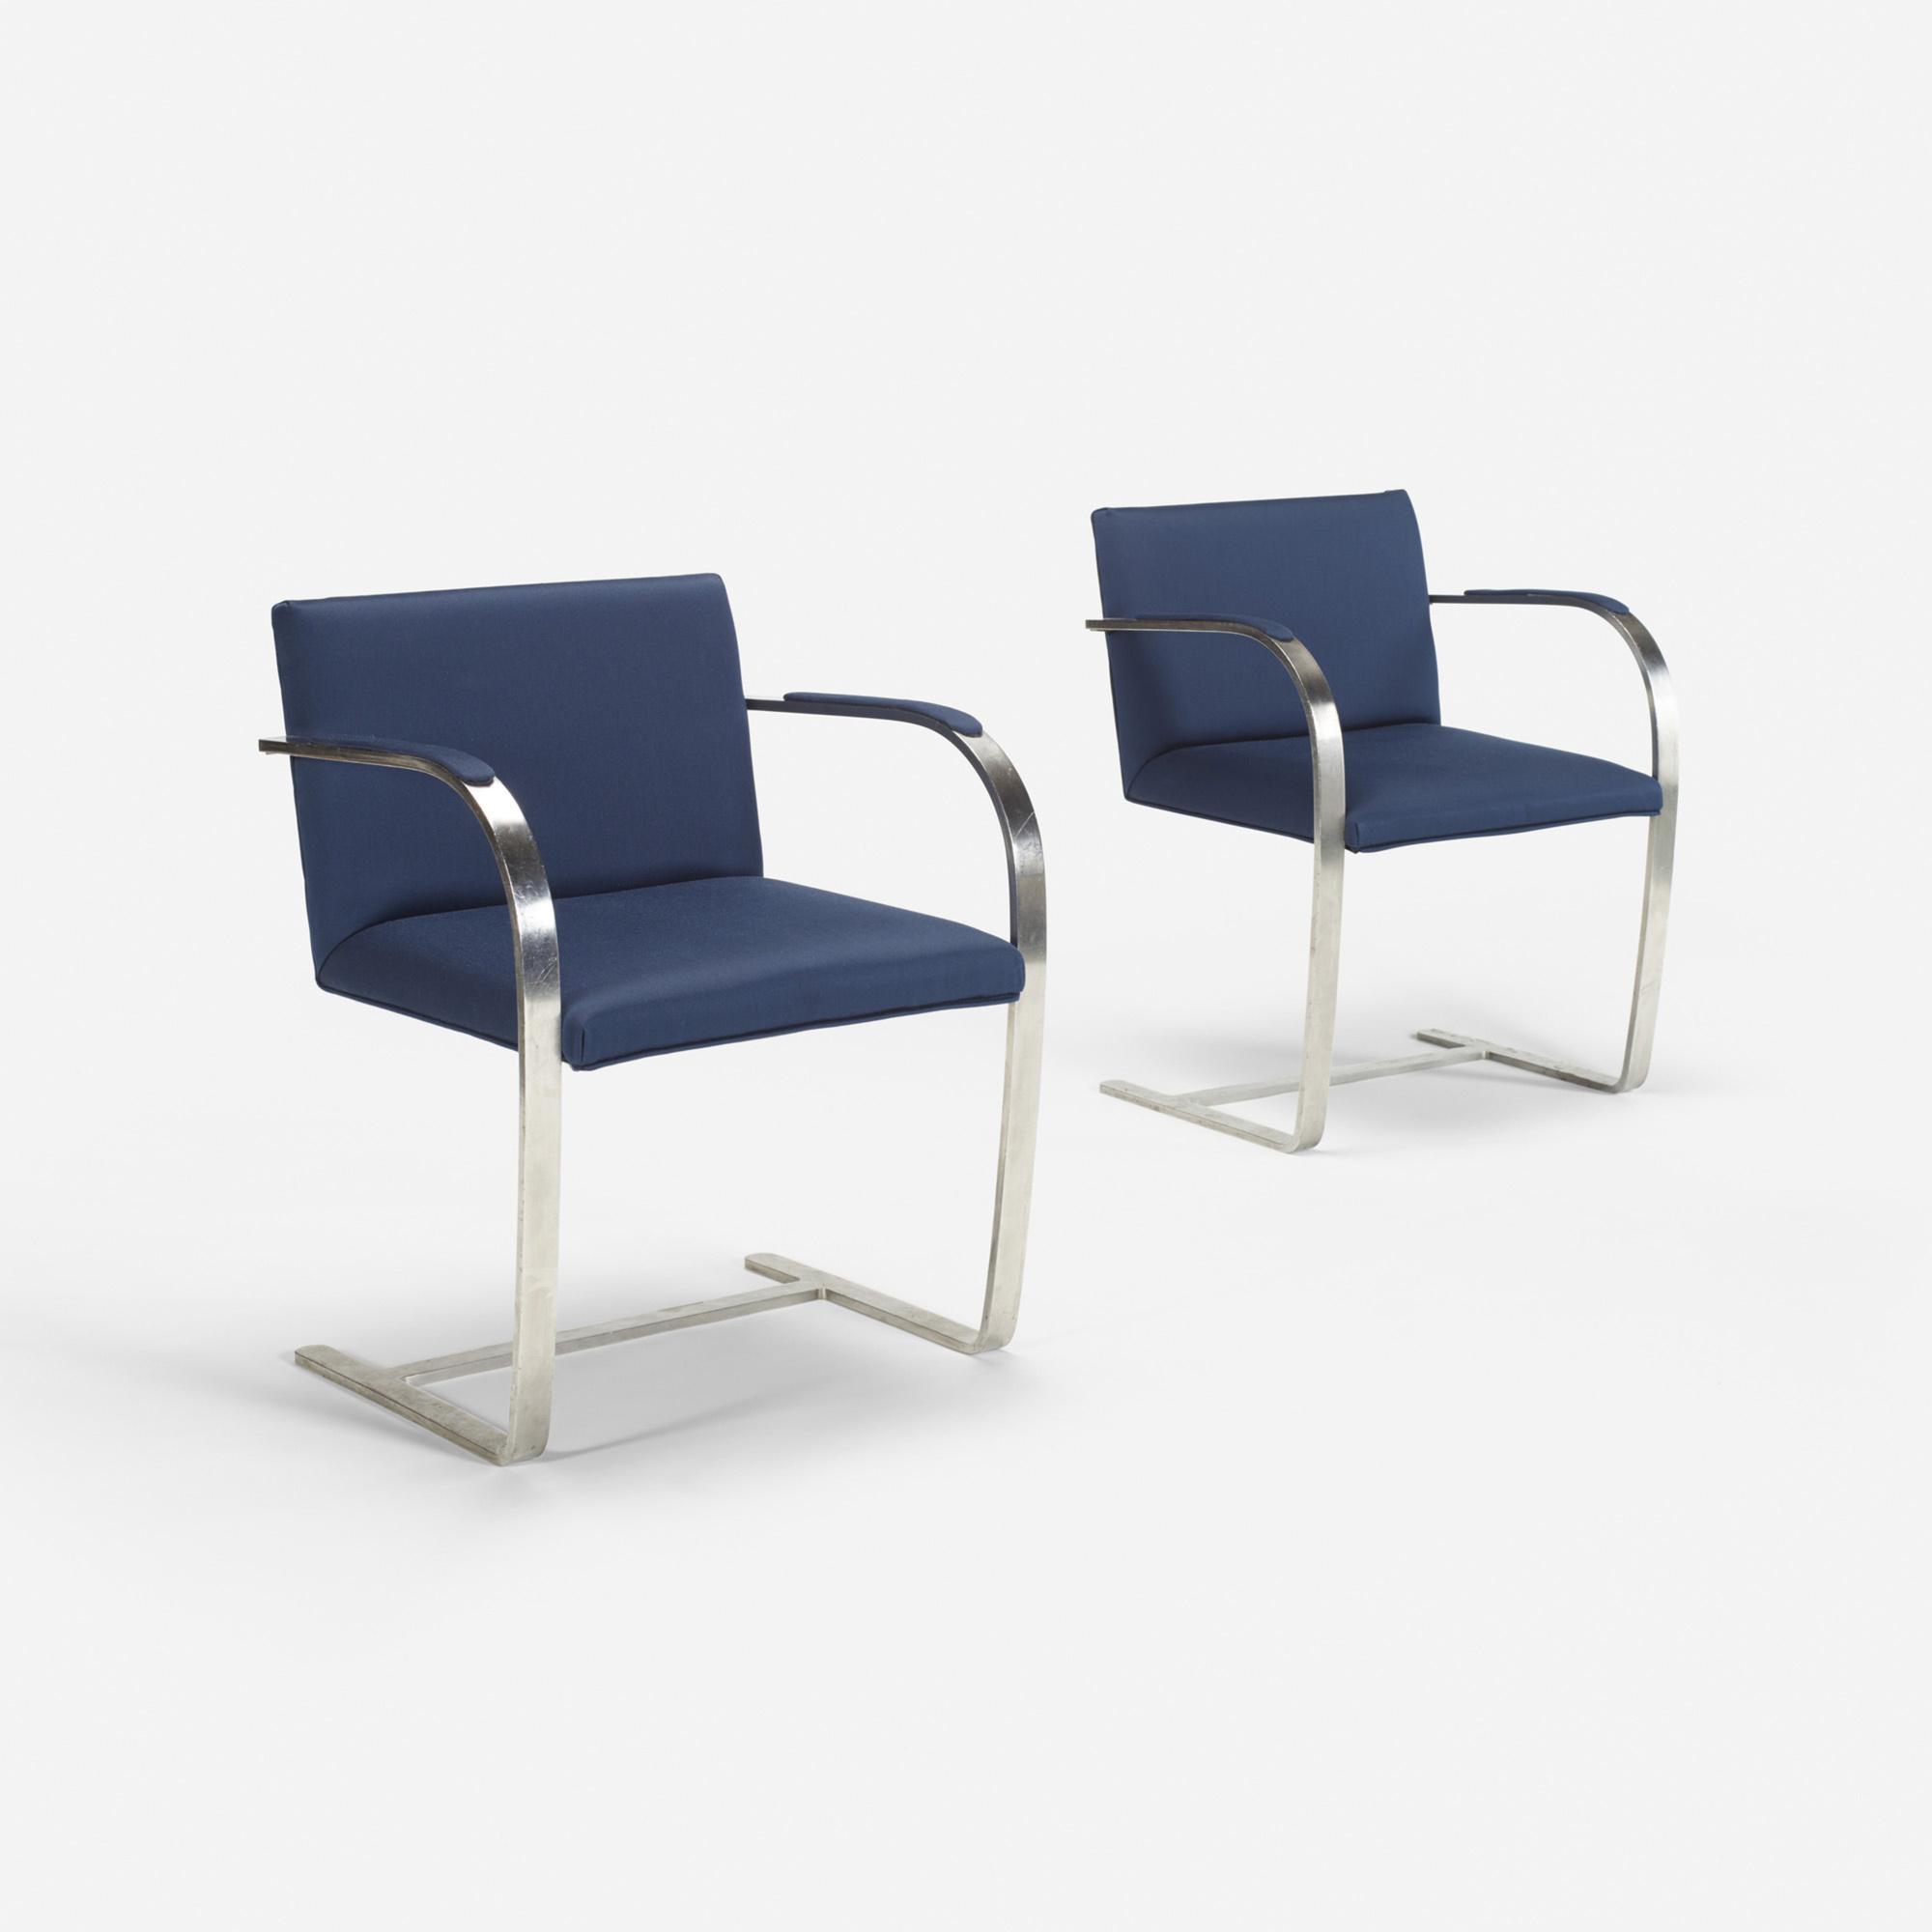 508: Ludwig Mies van der Rohe / Brno chairs from The Four Seasons, pair (1 of 1)